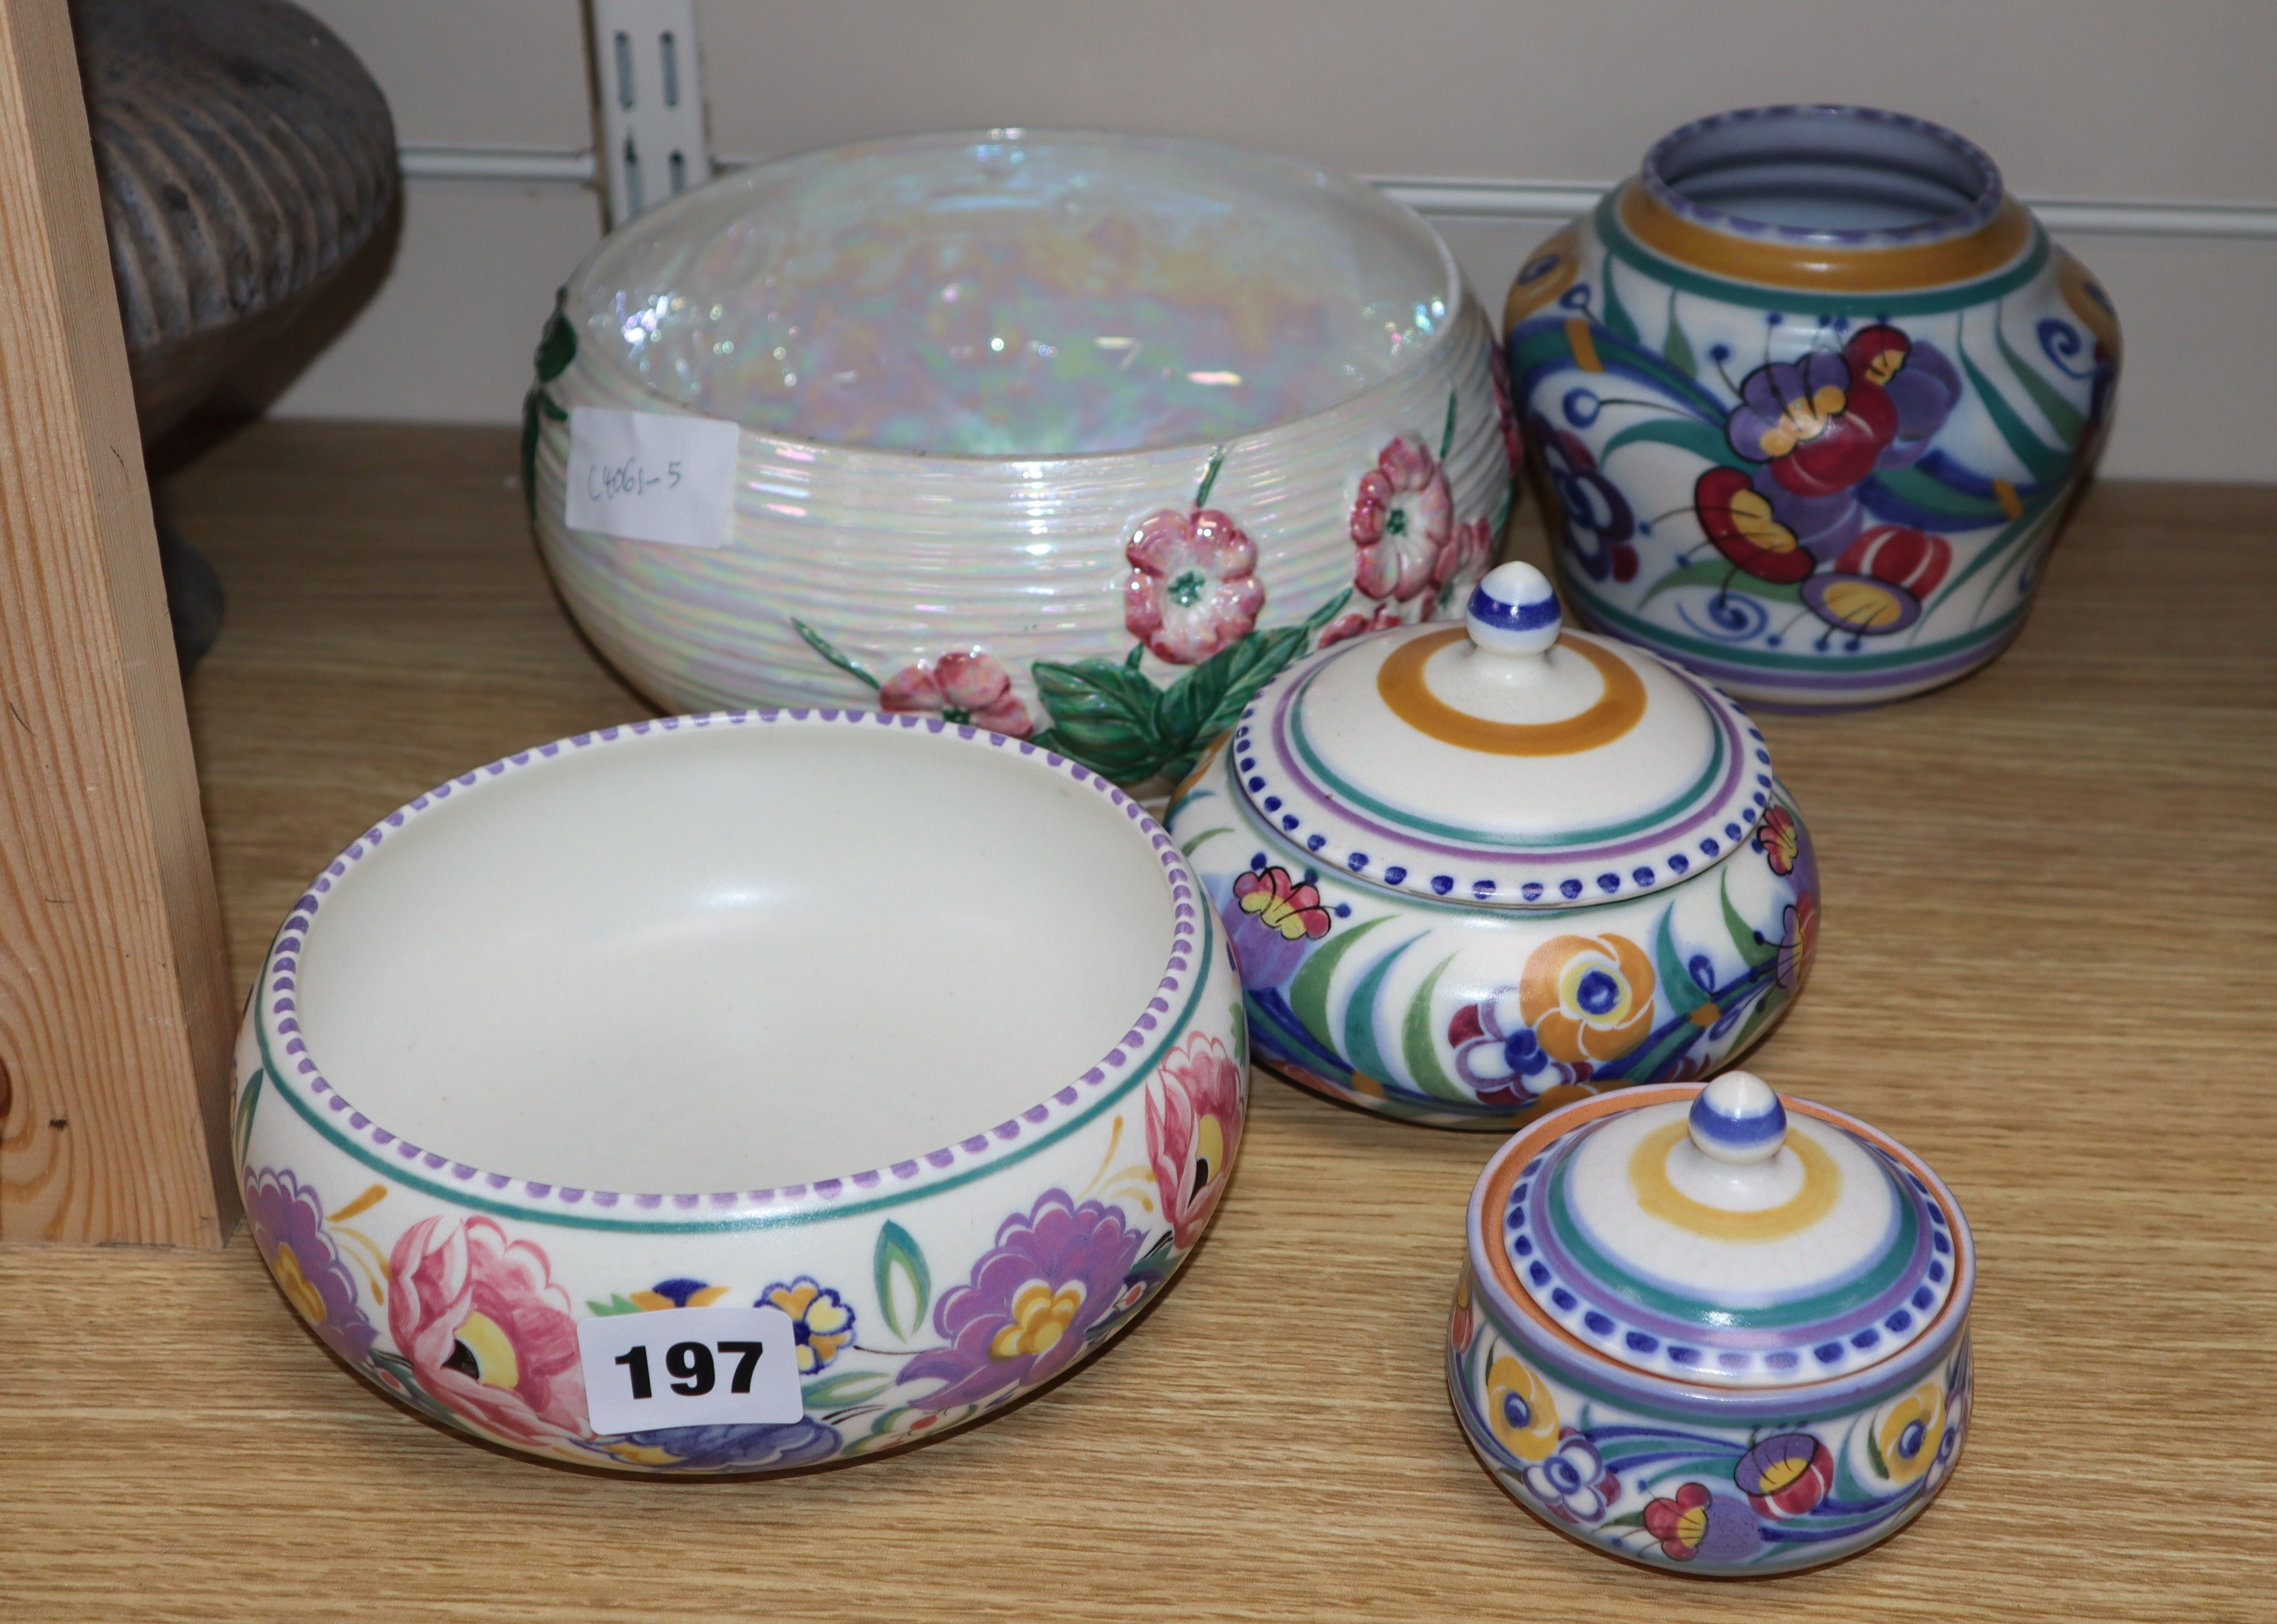 Lot 197 - A Poole pottery vase, bowl and two jars and cover and a Maling bowl